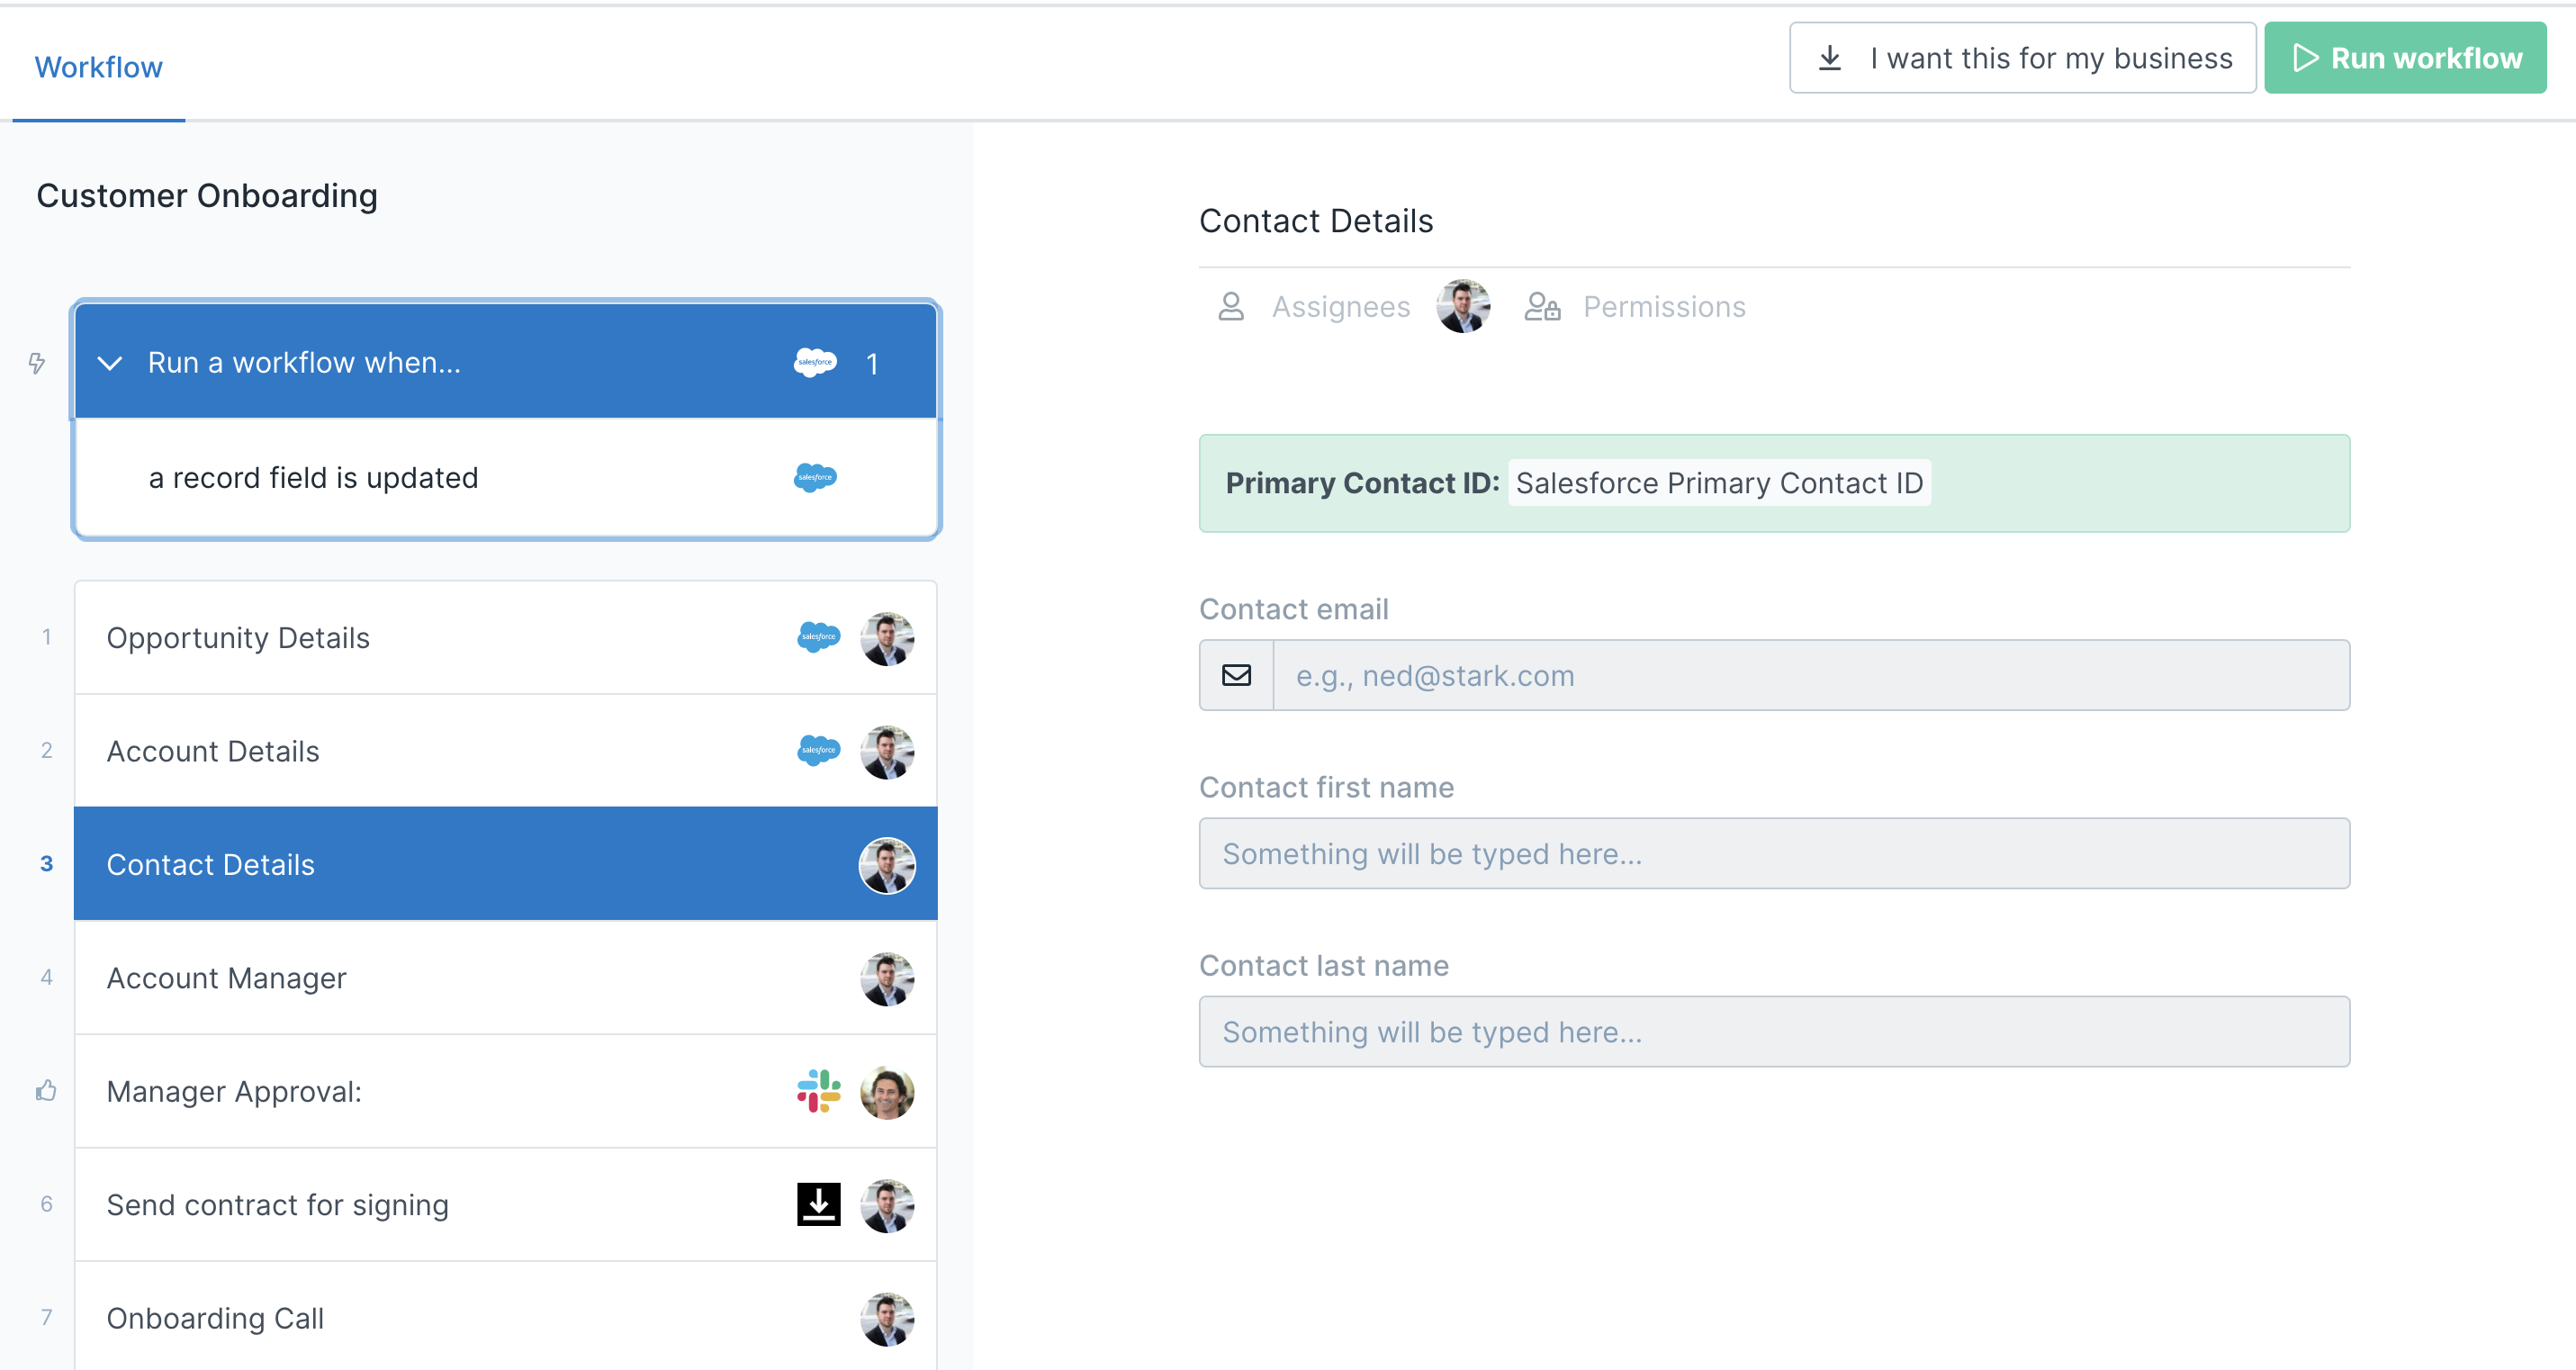 Customer onboarding workflow with Automations setup